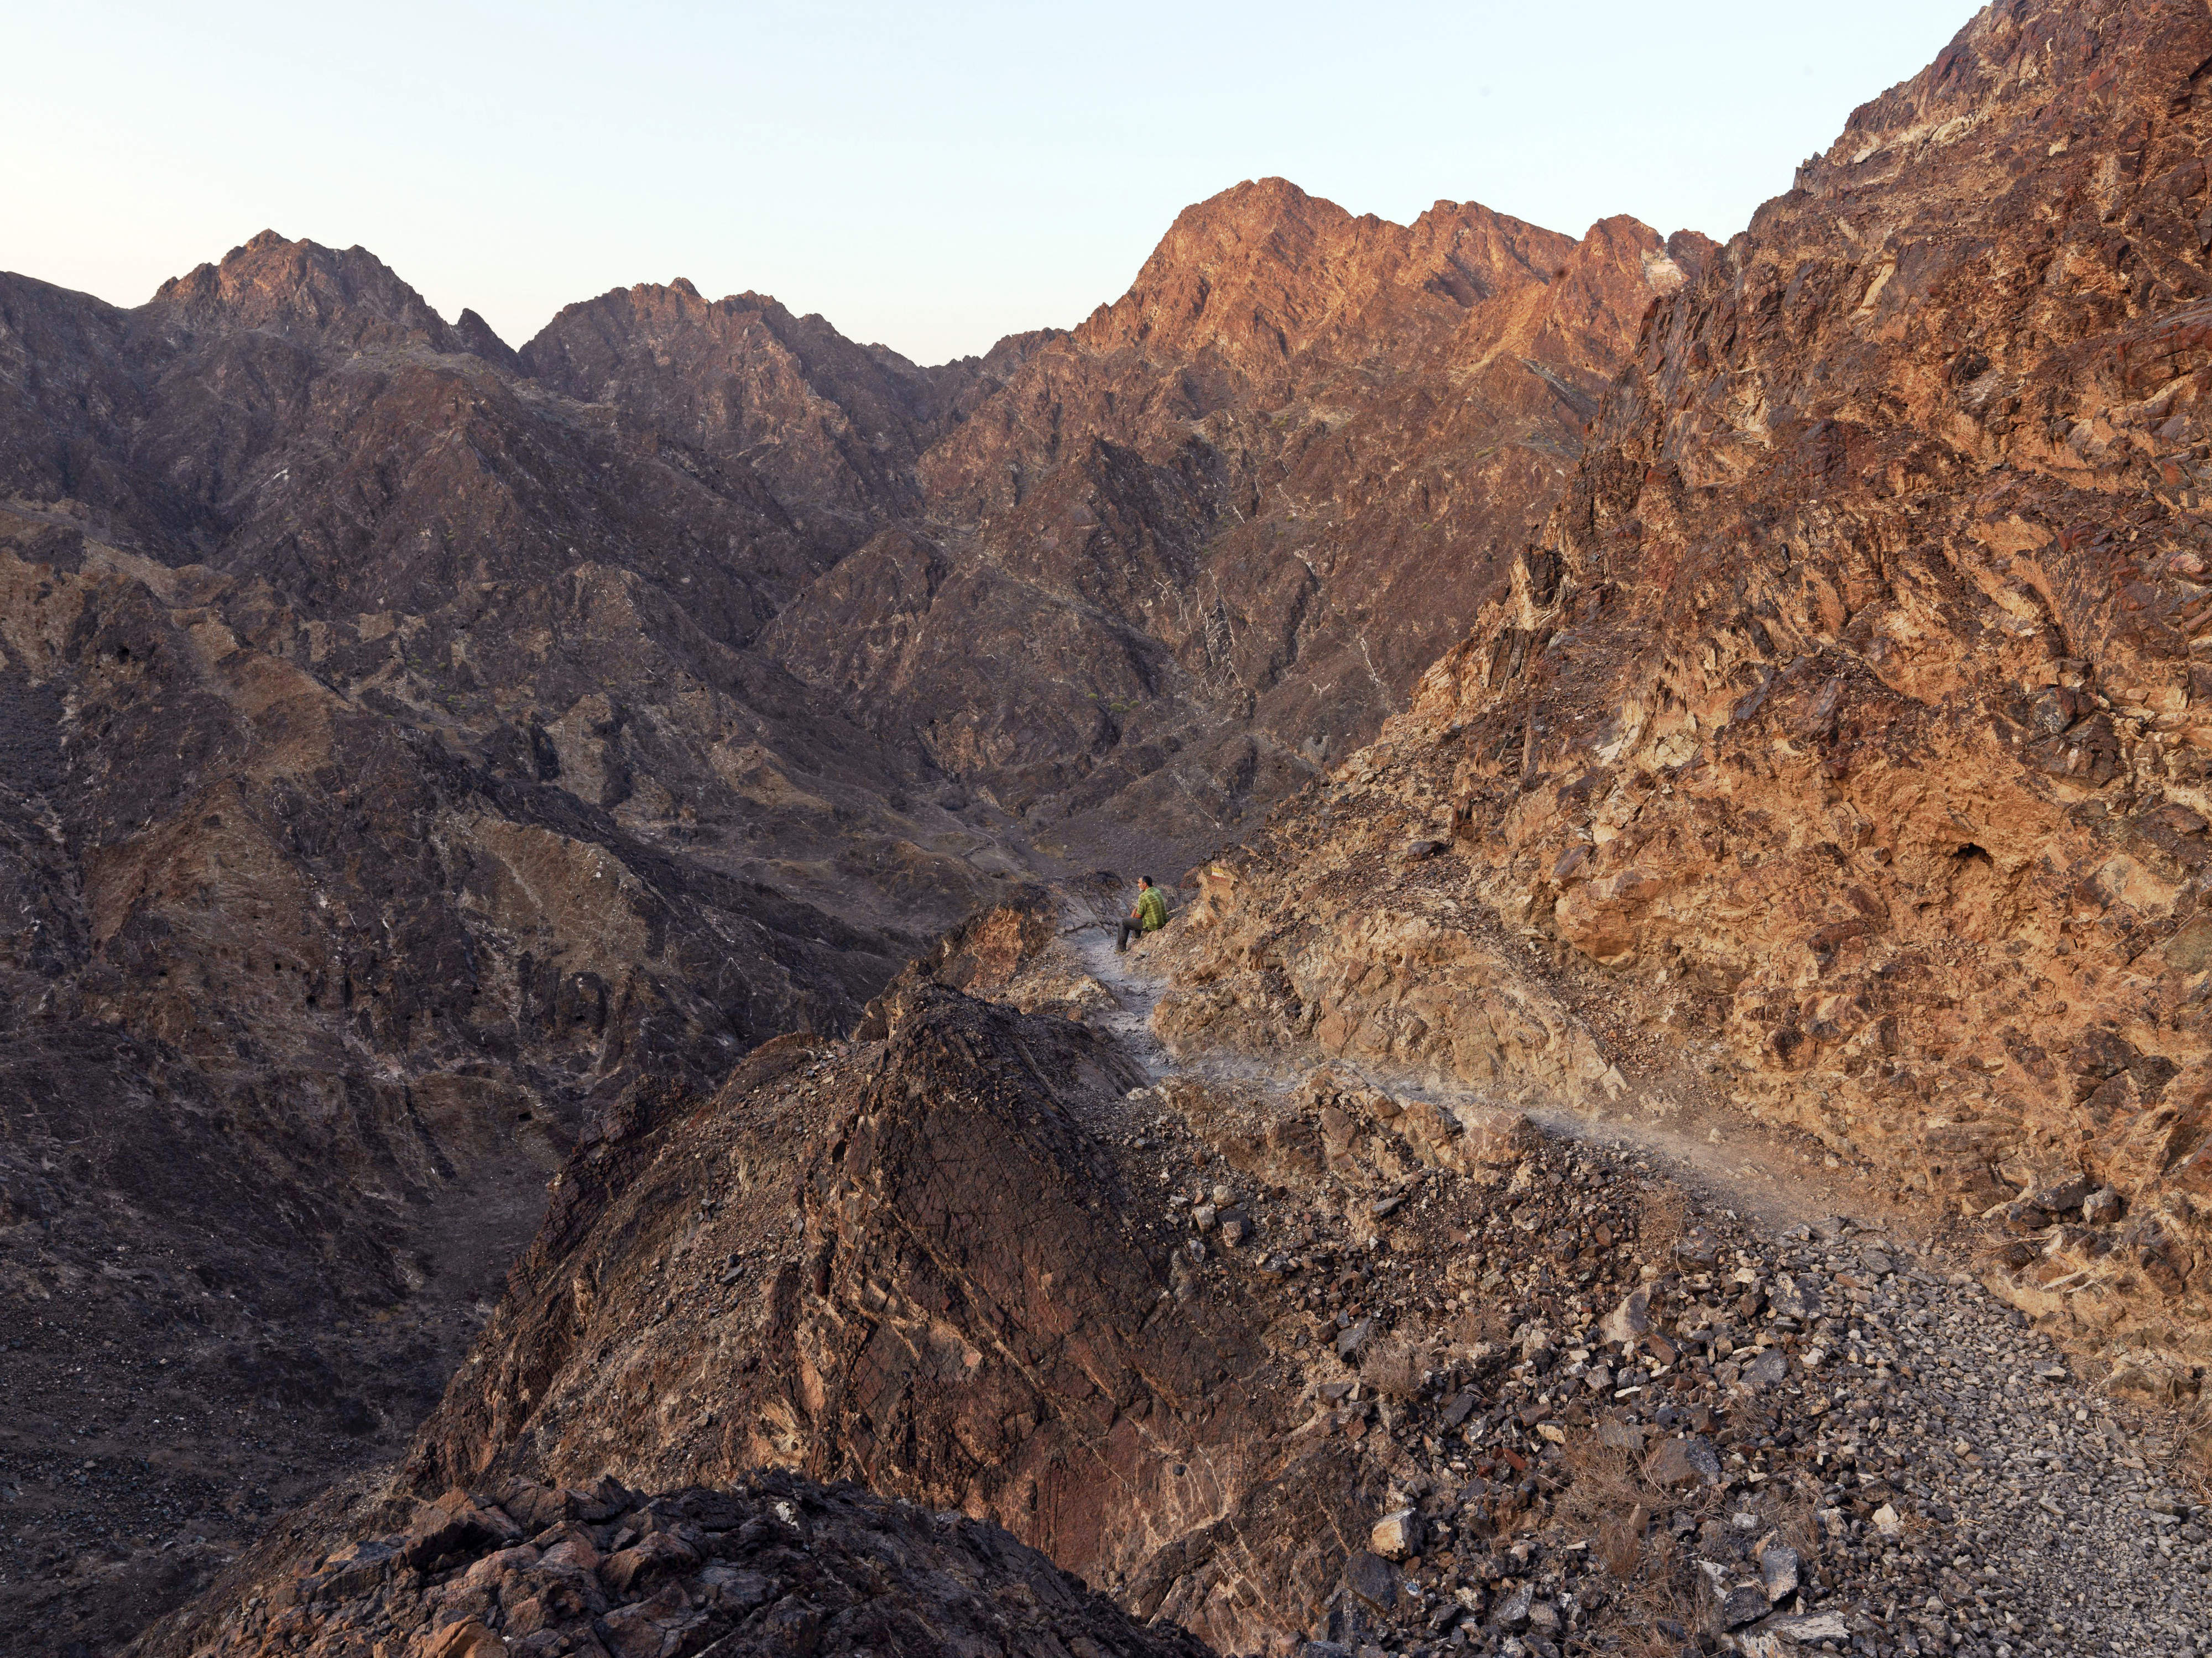 How Oman's Rocks Could Help Save the Planet - The New York Times